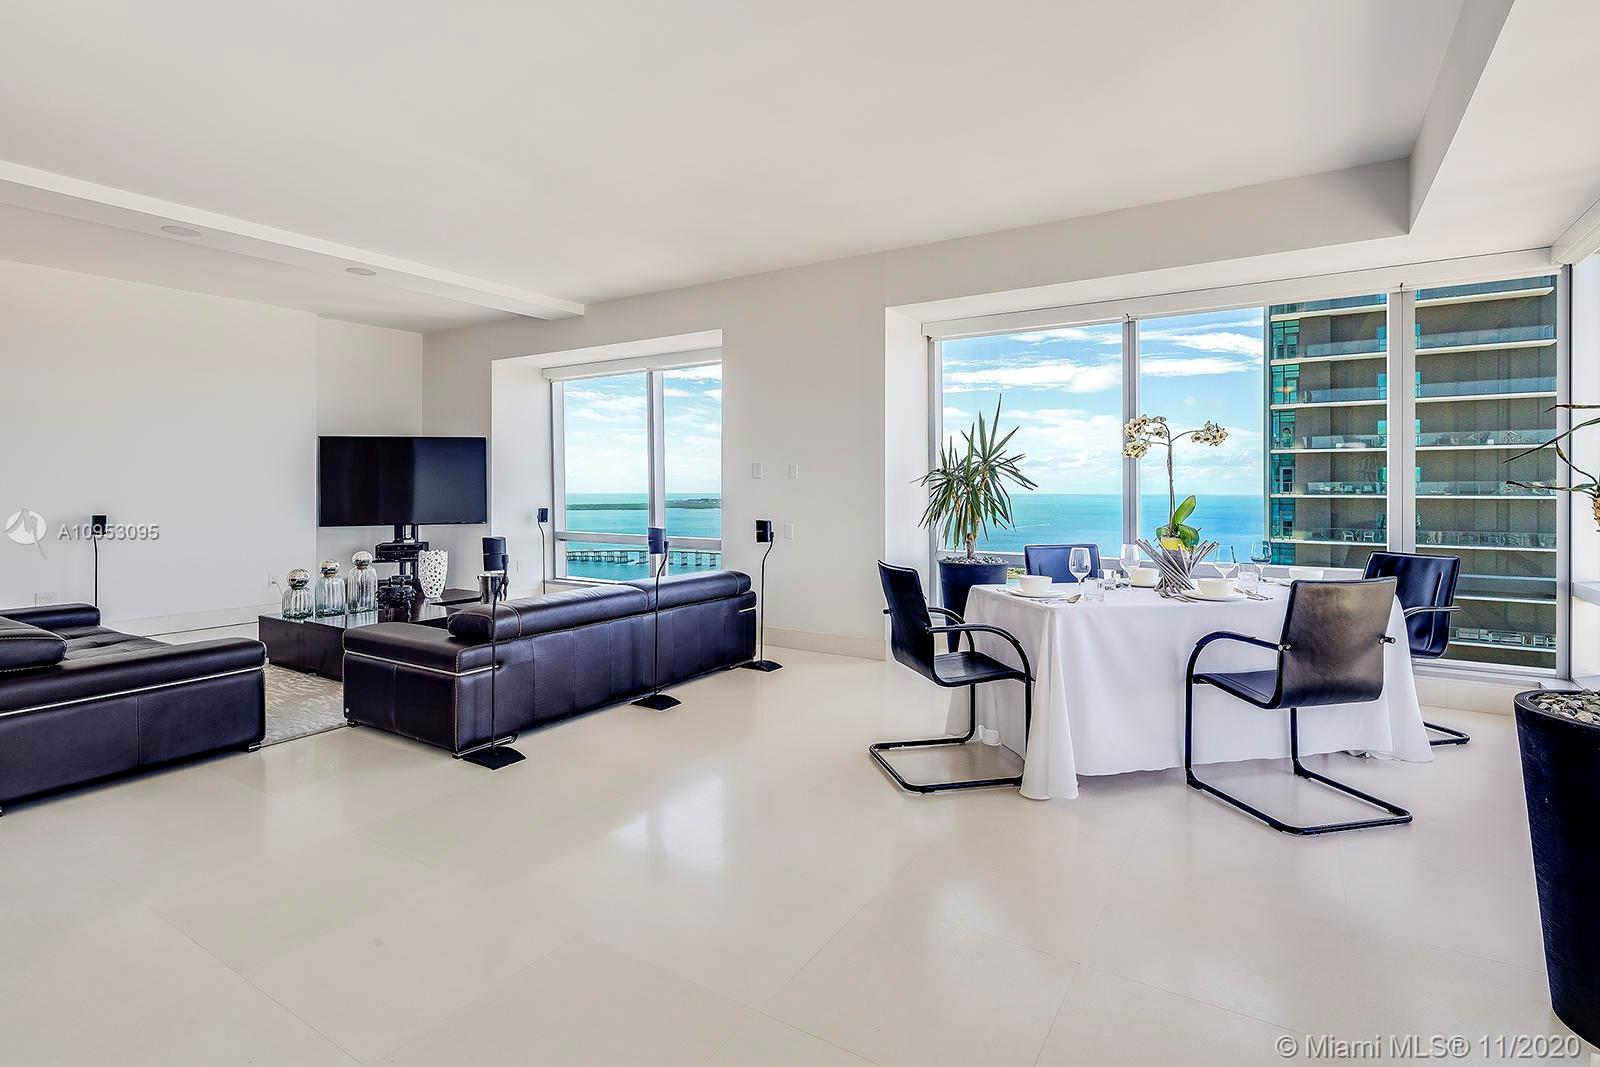 MASSIVE PRICE REDUCTION! Reduced from $1.795m by a motivated seller... Luxury with amazing lifestyle as only Four Seasons Residences can do... Don't miss this spacious 2 bedroom, 2.5 bathroom corner condominium that feels more like a home than a condo, with its breathtaking floor-to-ceiling wraparound water and city views soaring high above the magnificent Biscayne Bay and prestigious Brickell neighborhood. With full access to the beautiful Four Seasons Miami hotel facilities boasting 3 landscaped pools, Jacuzzi, complimentary 24-hour concierge & valet, cabanas, restaurants, bars, owners' lounge, access to the 50,000 sq-ft luxurious Equinox spa & gym, and so much more, this property is a must see!